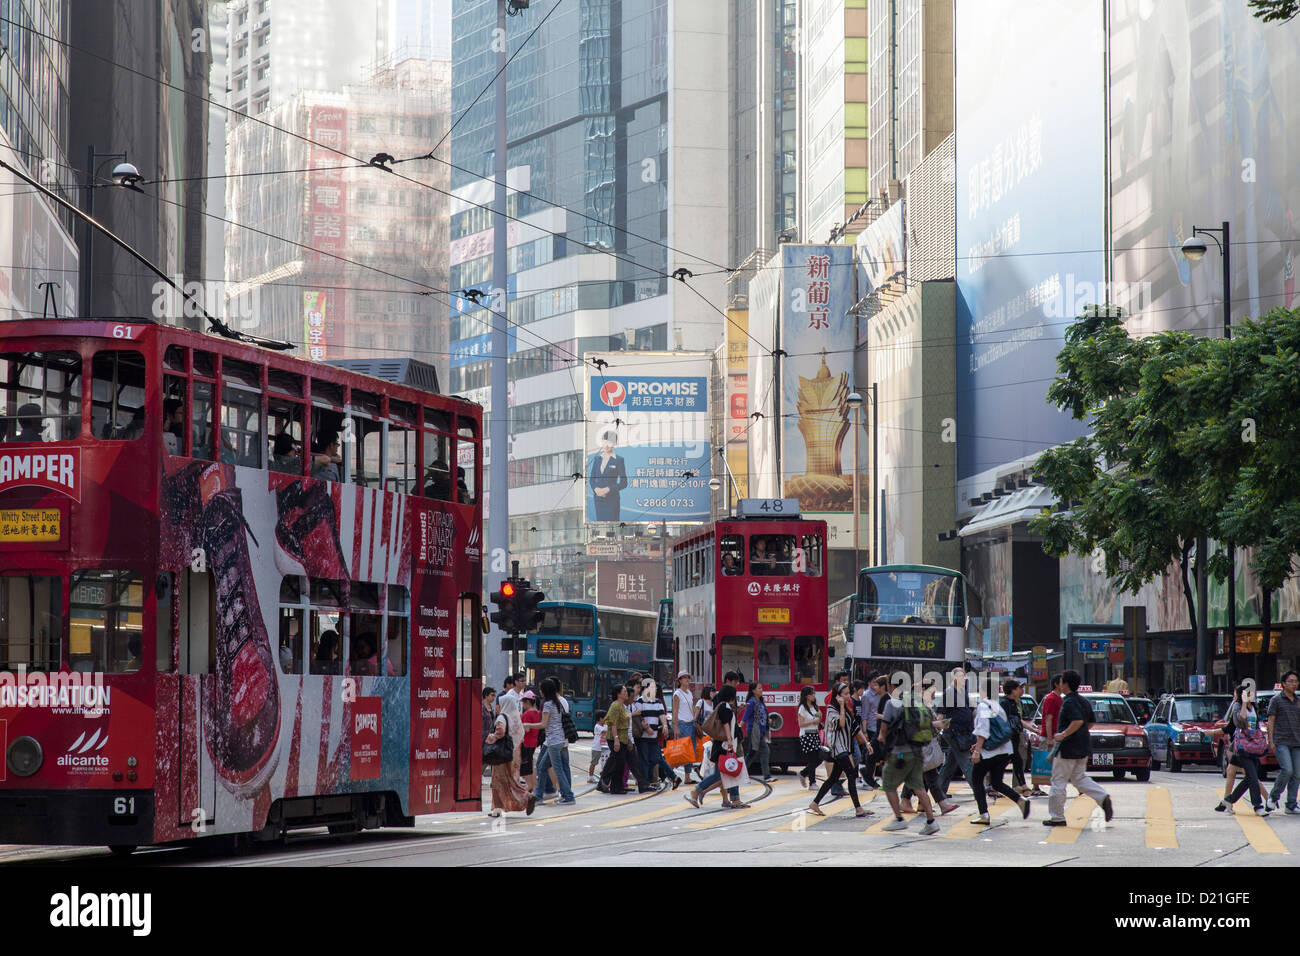 Tram and people in the street, North Point, Hongkong, China, Asia - Stock Image